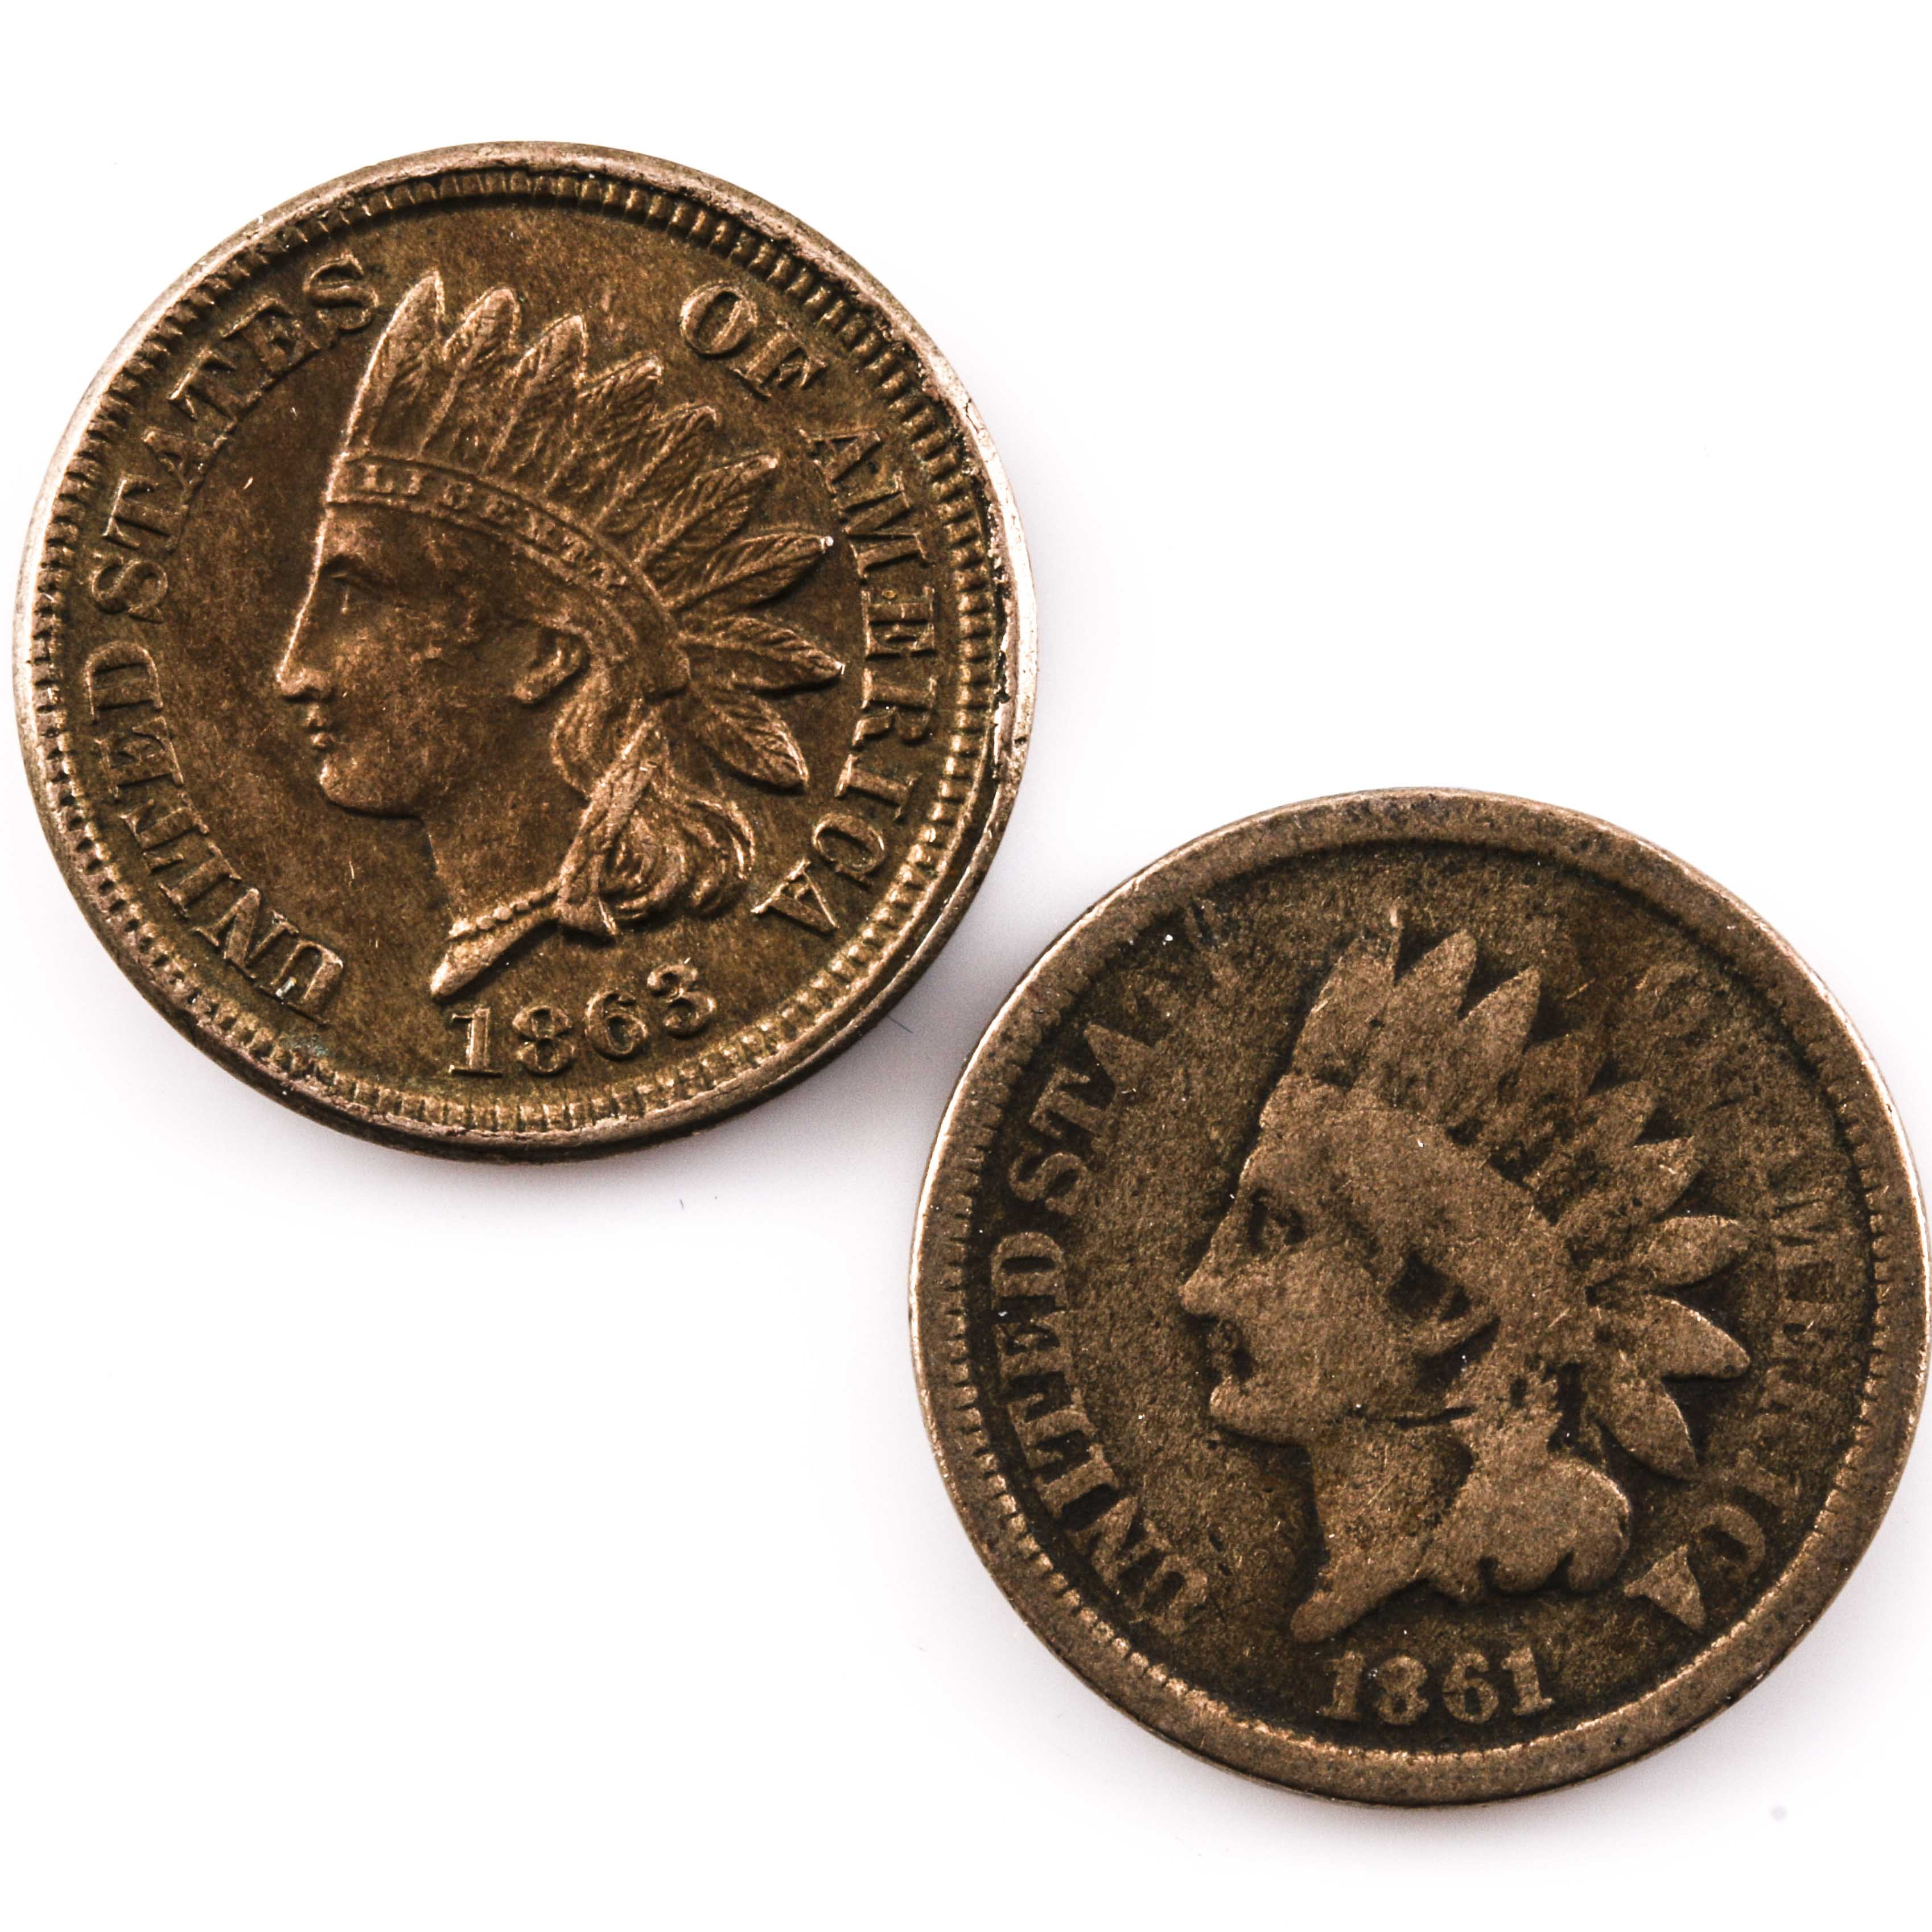 Two Copper-Nickel Indian Head Cents